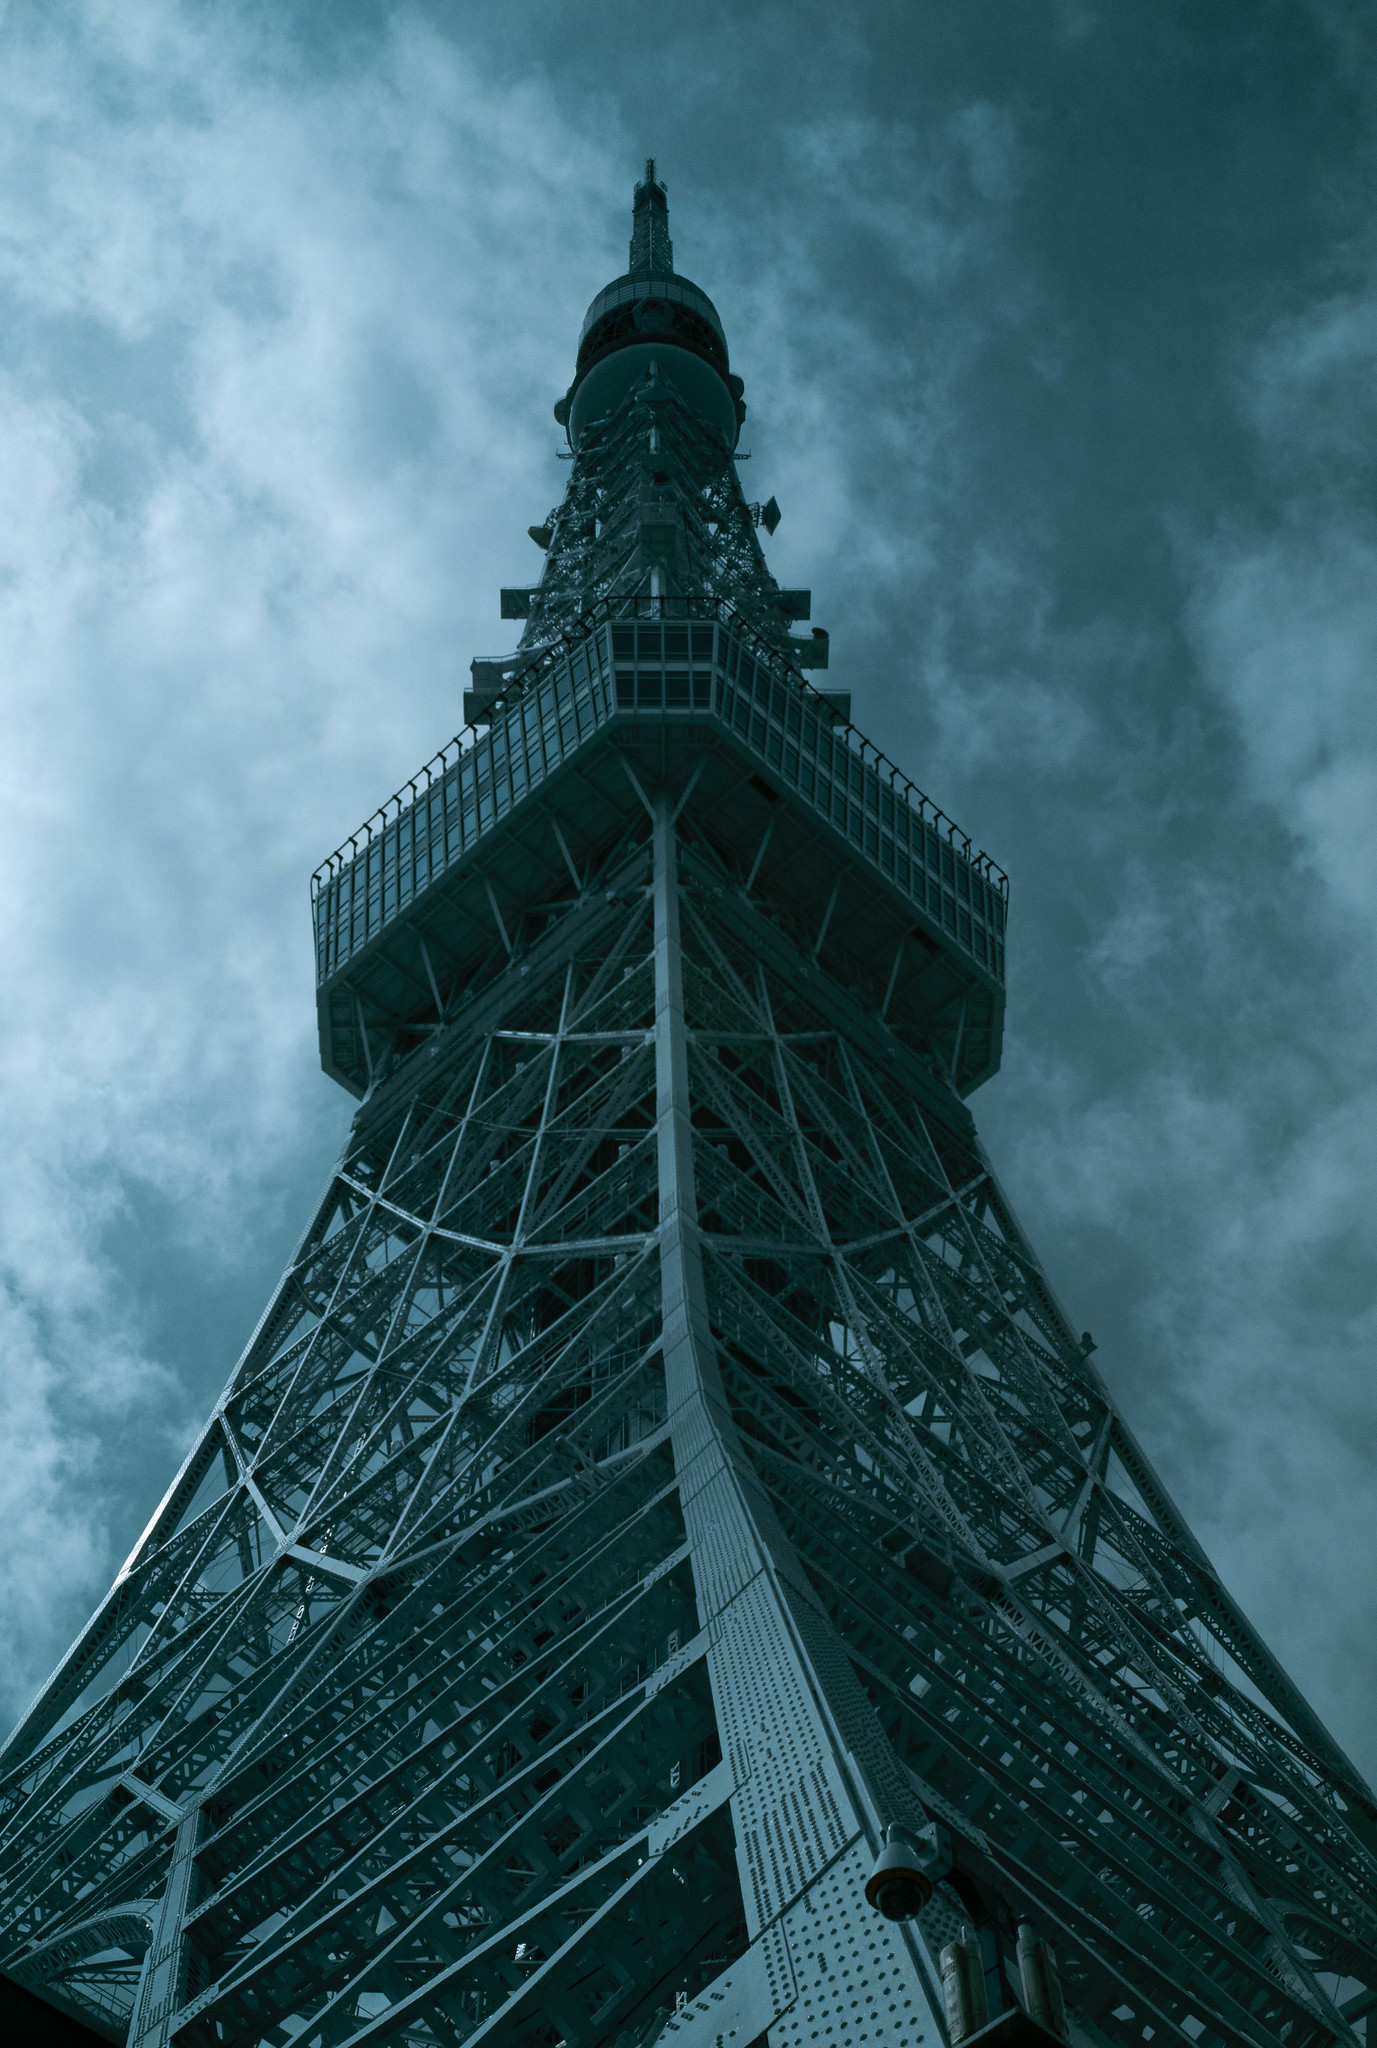 Tokyo Tower(infrared photography)